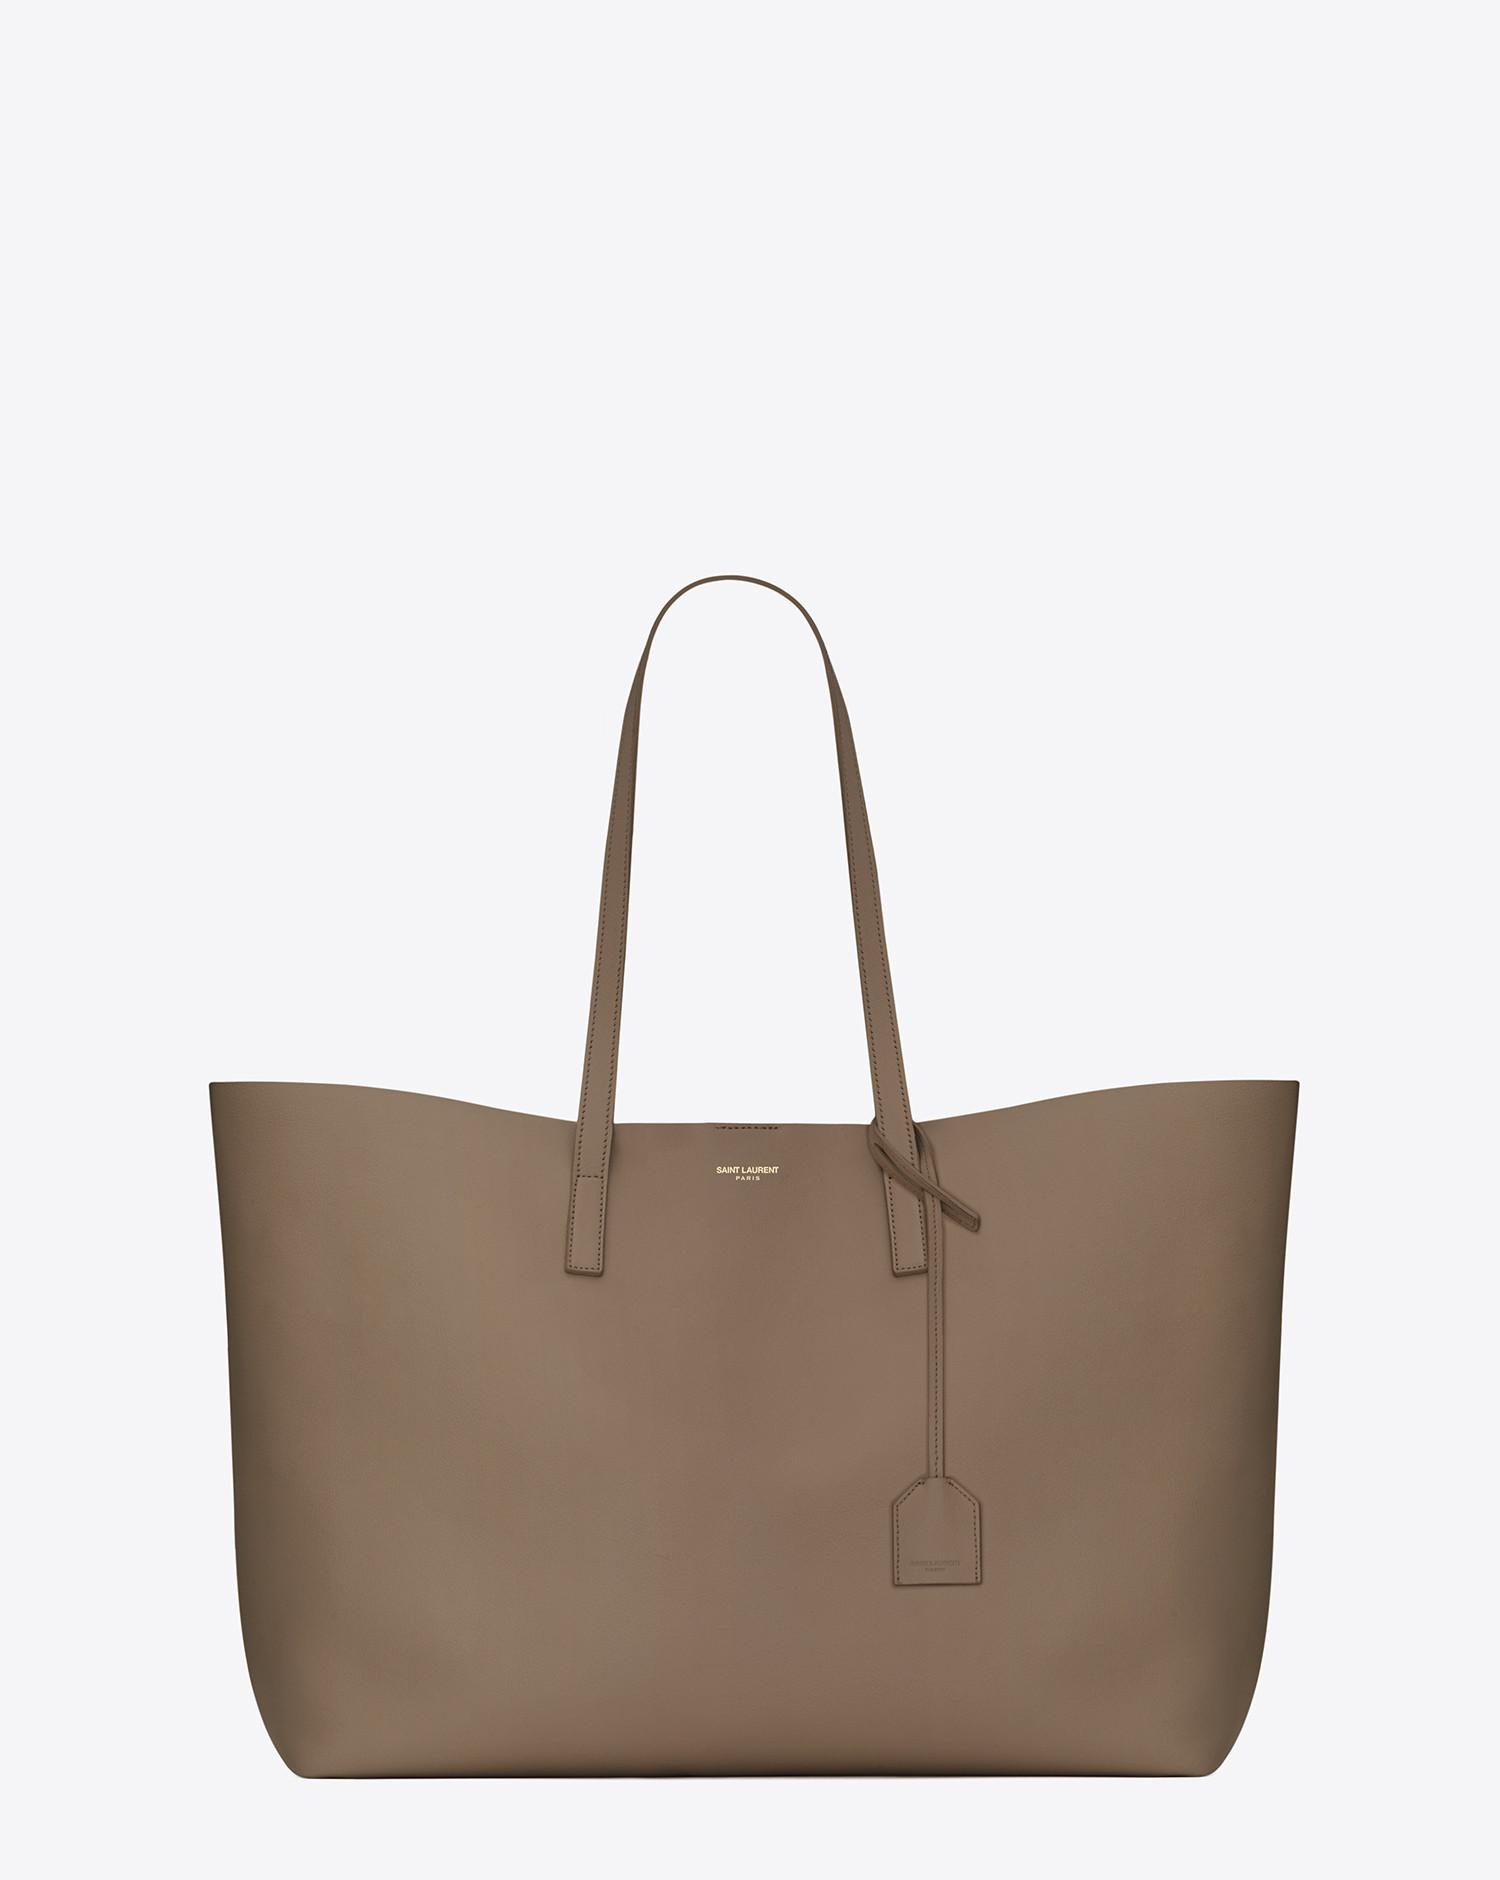 Saint laurent Shopping Tote Bag In Taupe Leather in Gray | Lyst